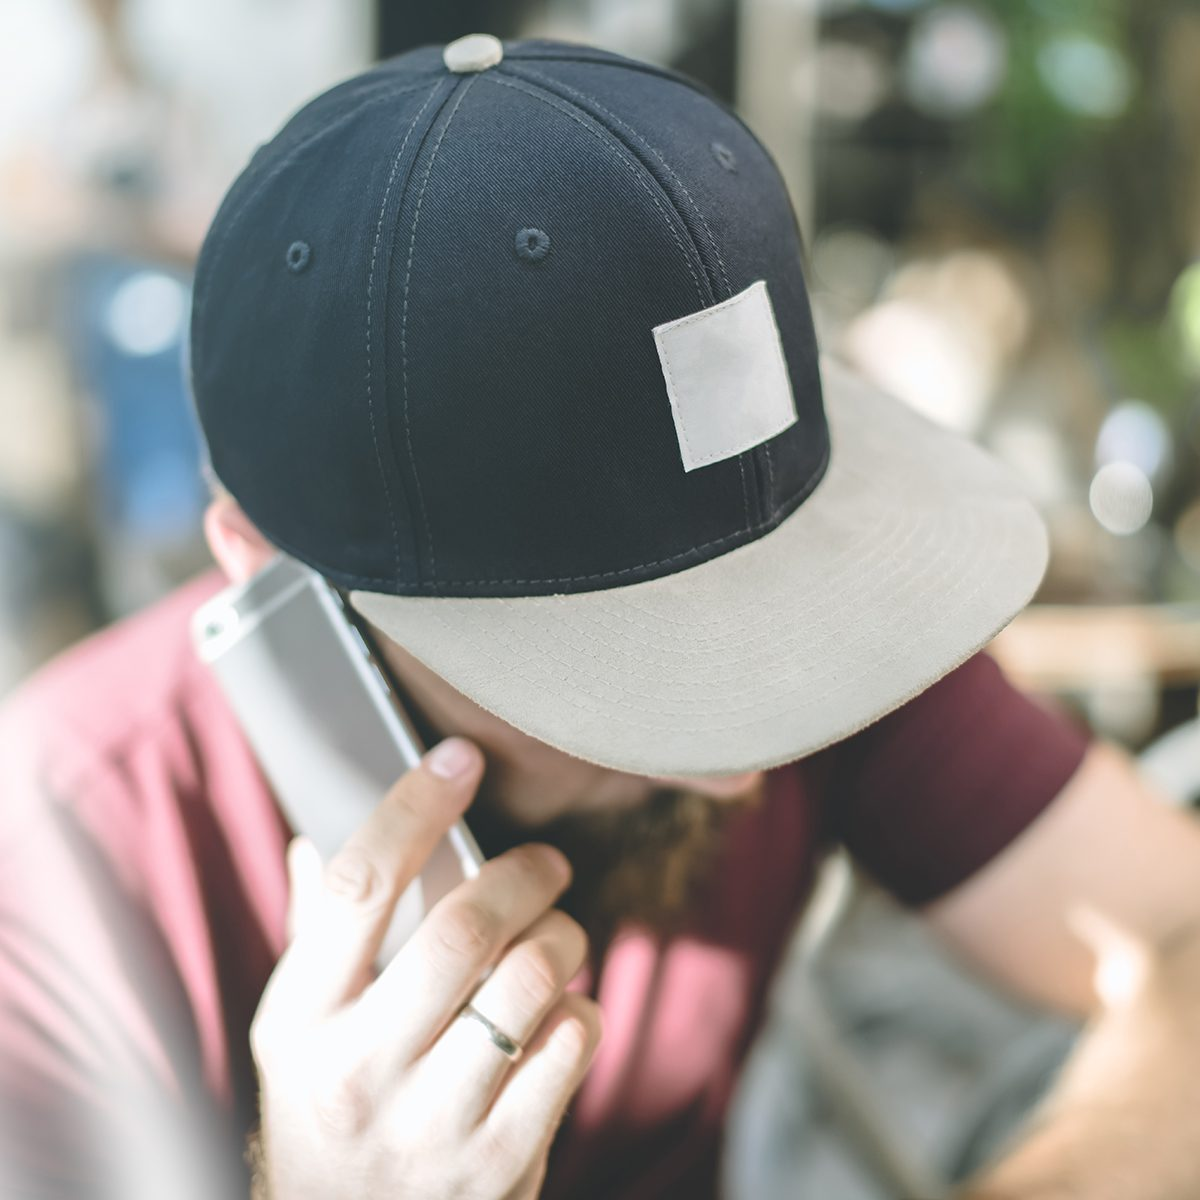 Closeup of a baseball cap with space for text. A man in a cap with a visor sitting with his head down and talking on the phone. Man uses the gadget.